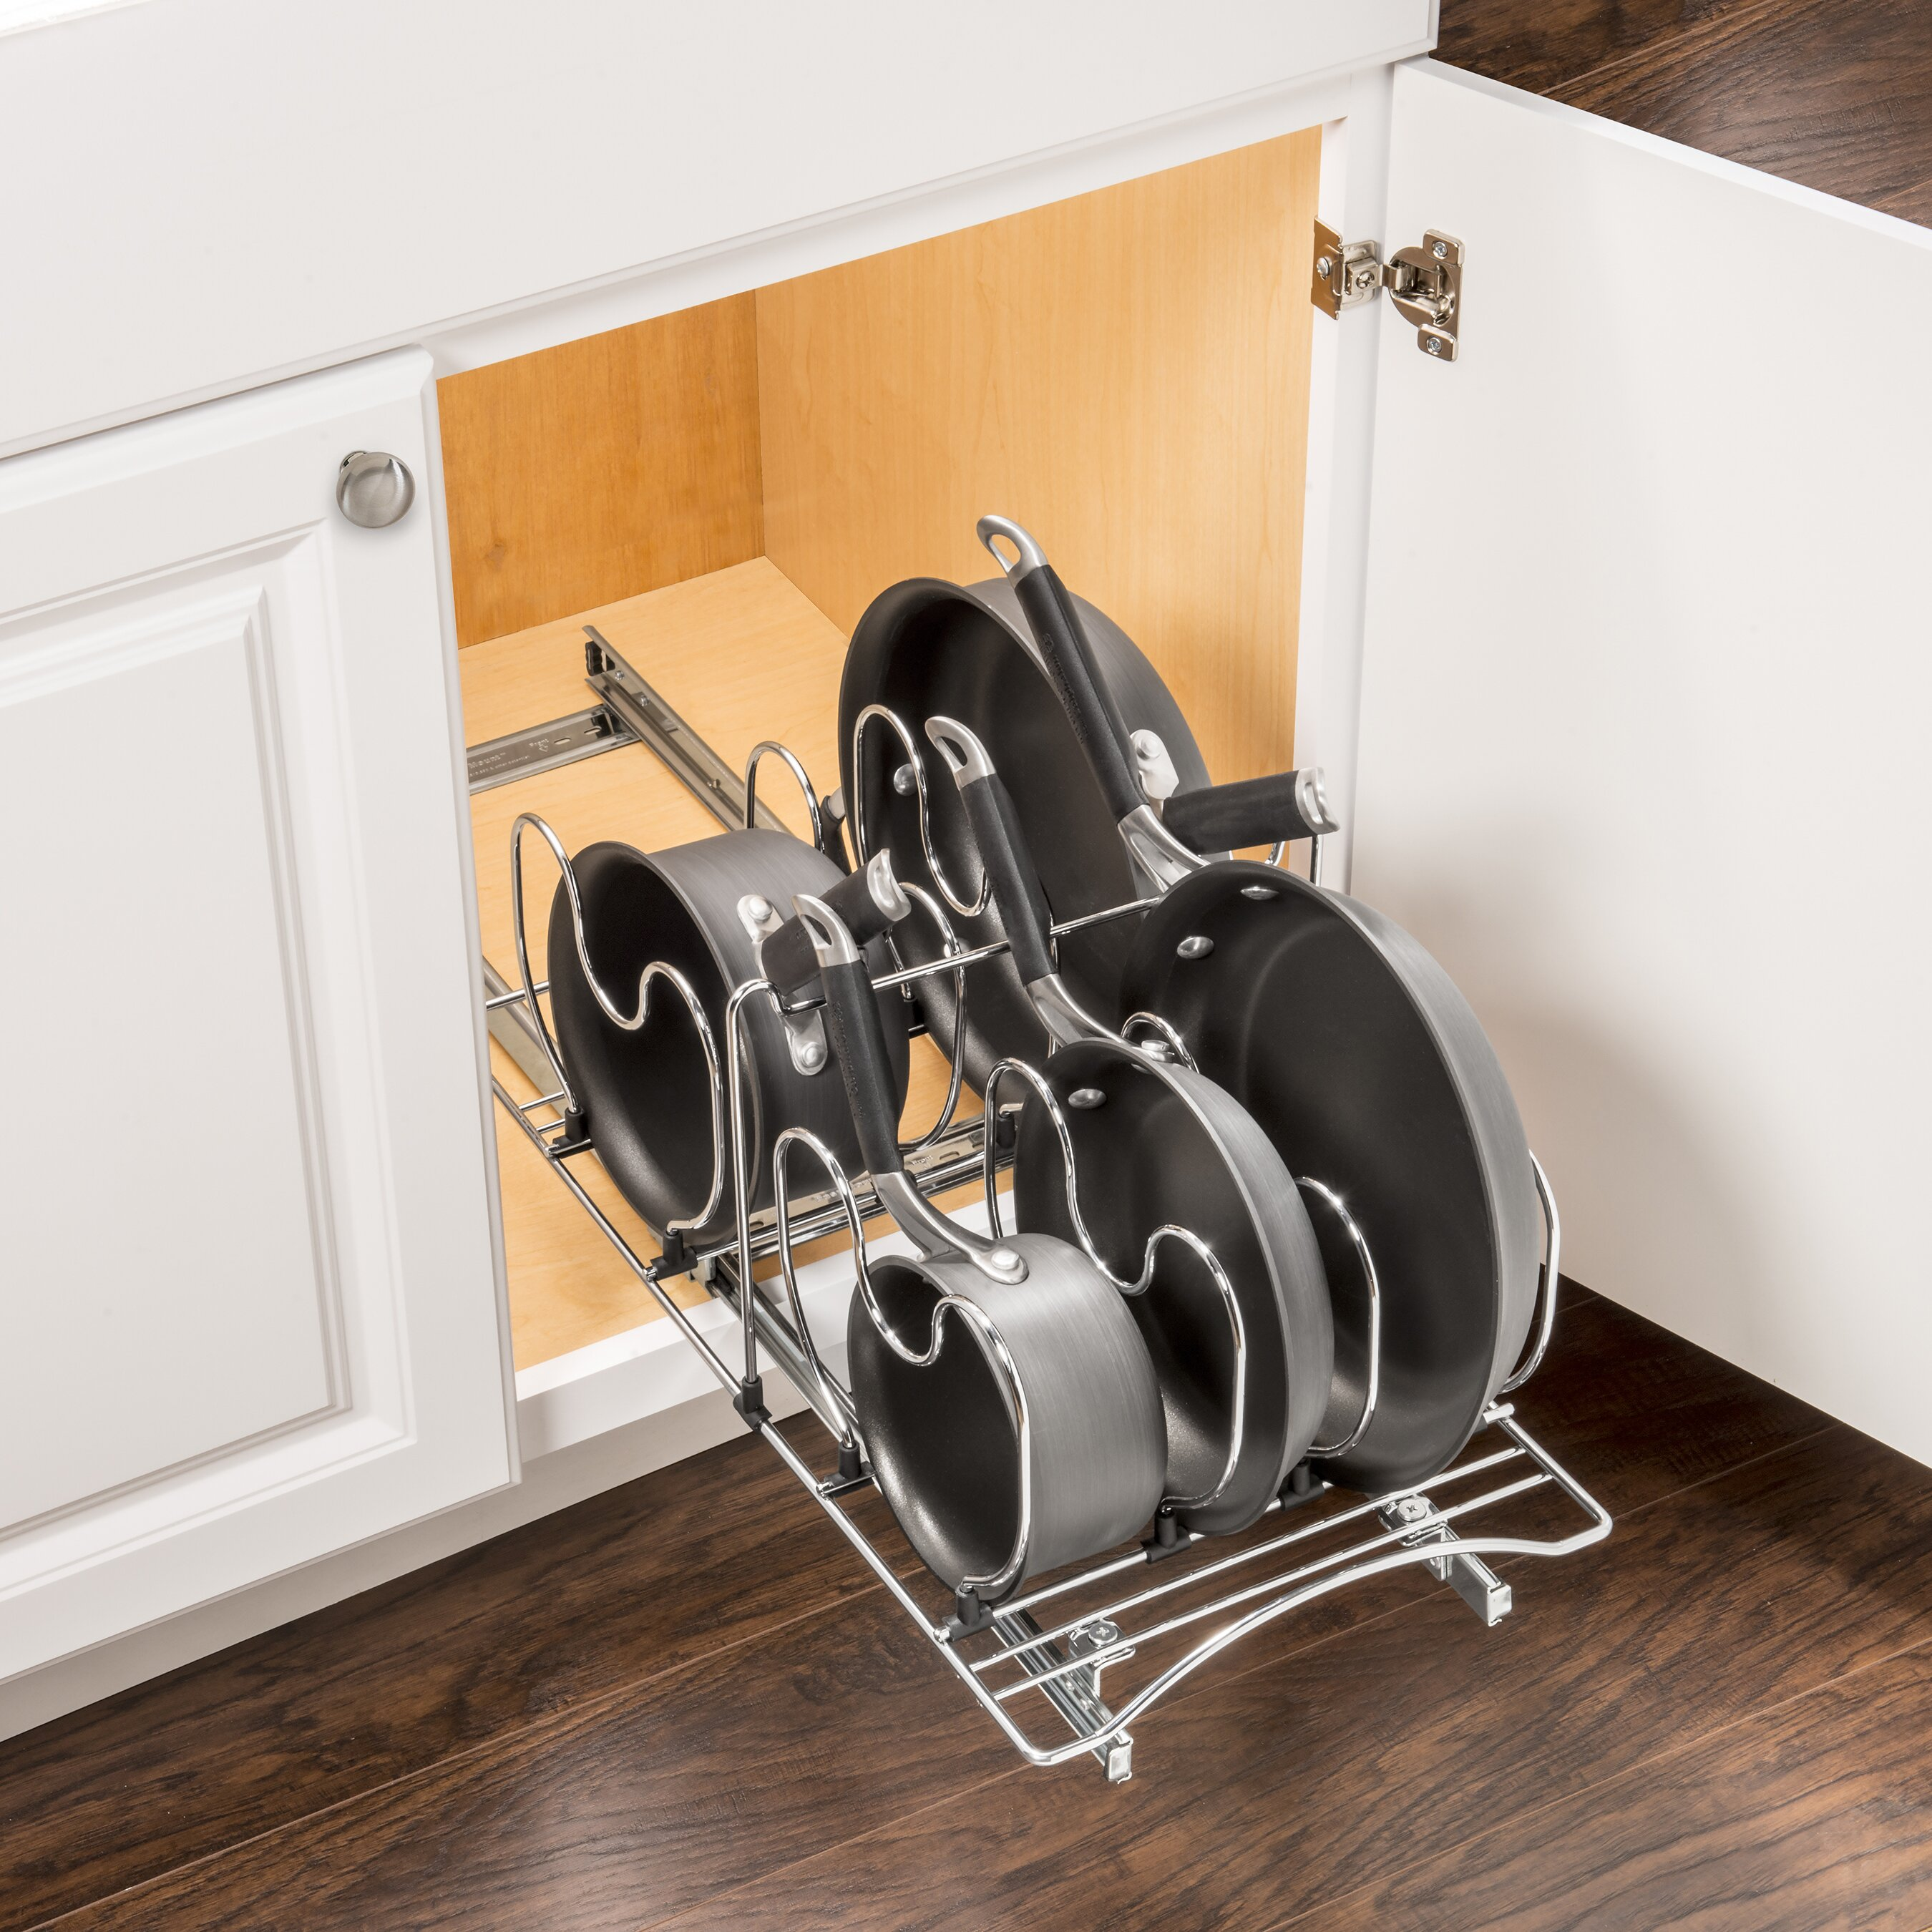 Lynk Roll Out Cabinet Organizer: Lynk Roll Out Cookware Organizer